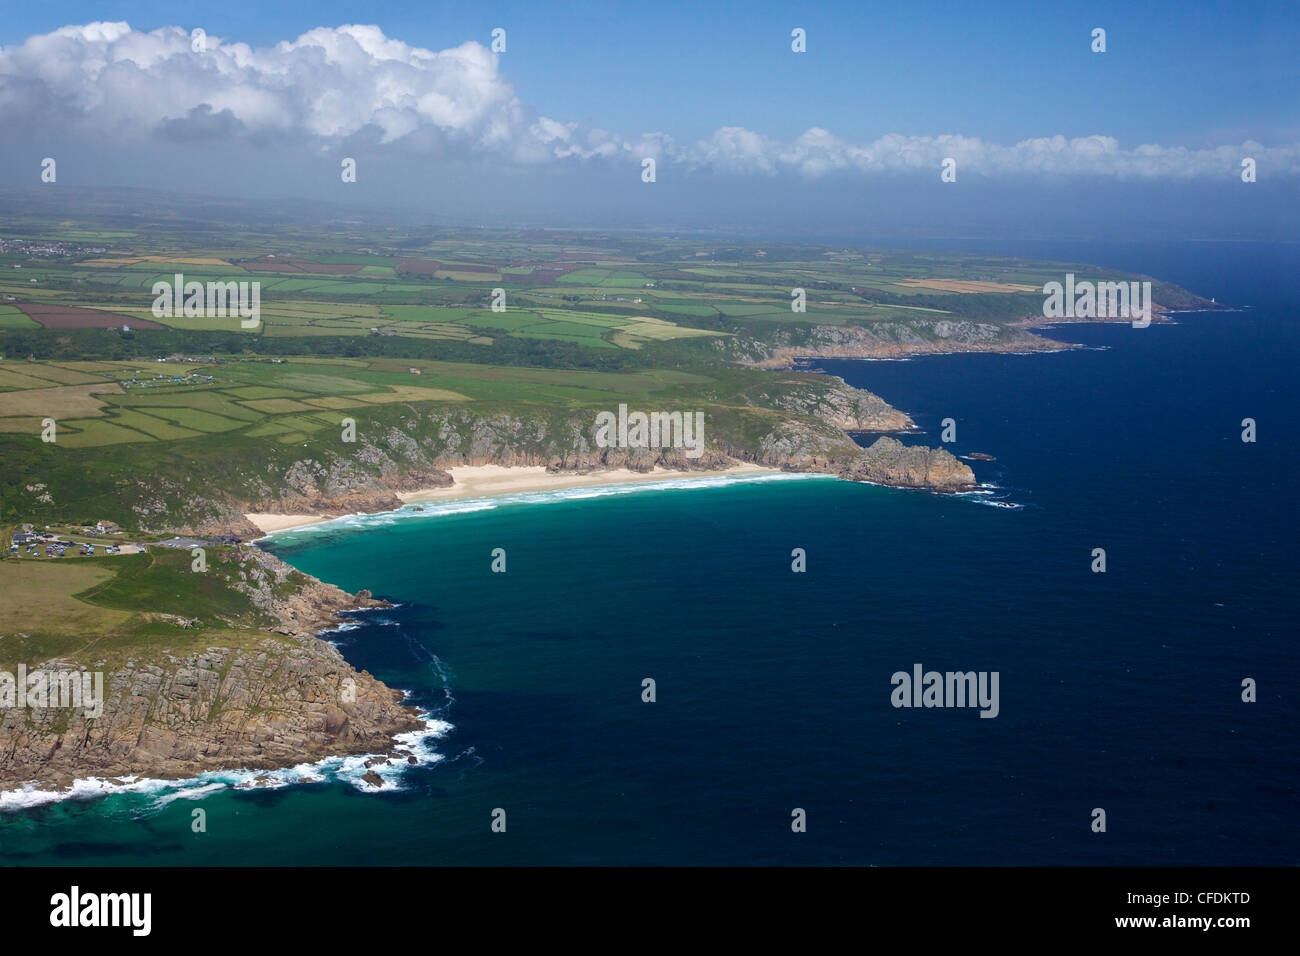 Aerial photo of Lands End Peninsula, Treen Cliff, Logan Rock, West Penwith, Cornwall, England, UK - Stock Image